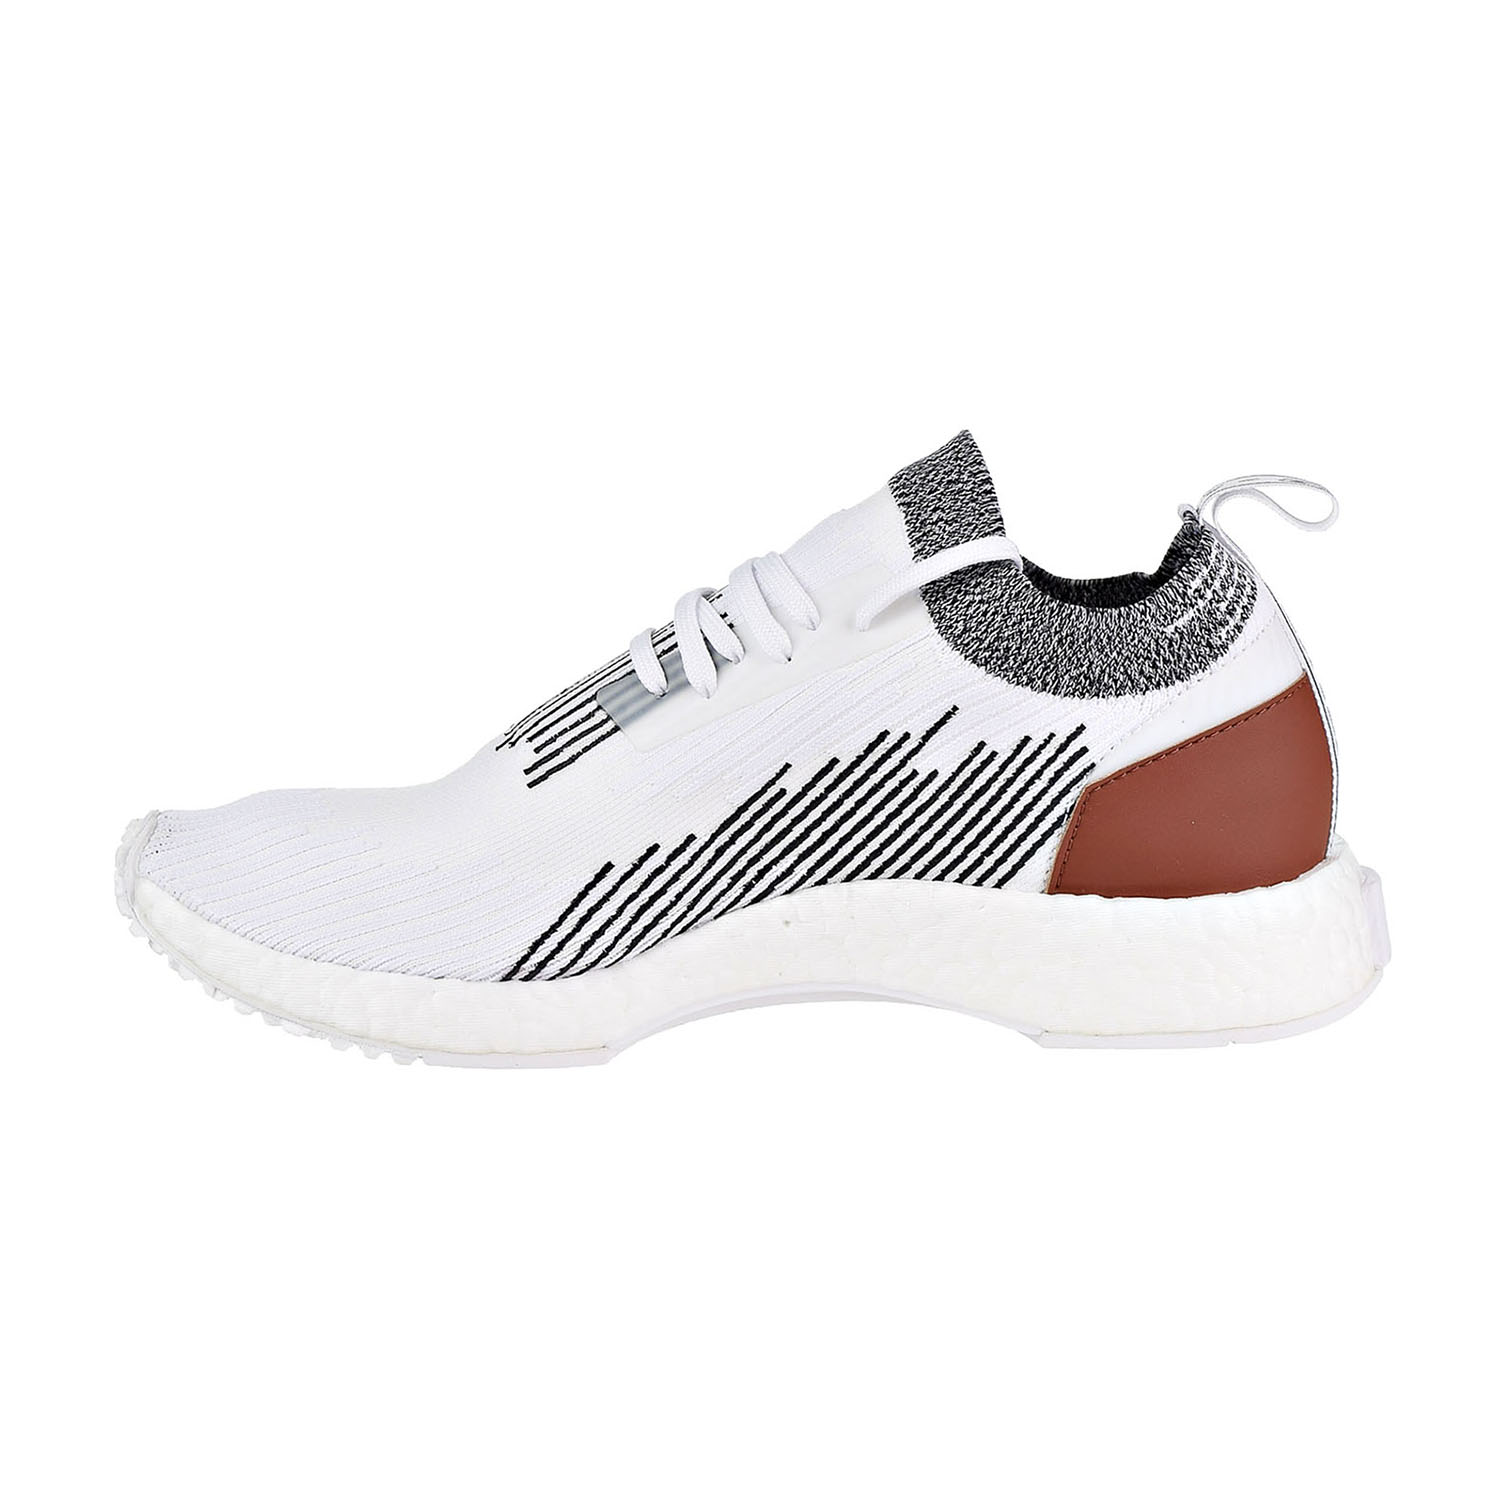 brand new 45f51 3186e Adidas Originals NMD Racer Men s Shoes White Black Strewo ac8233